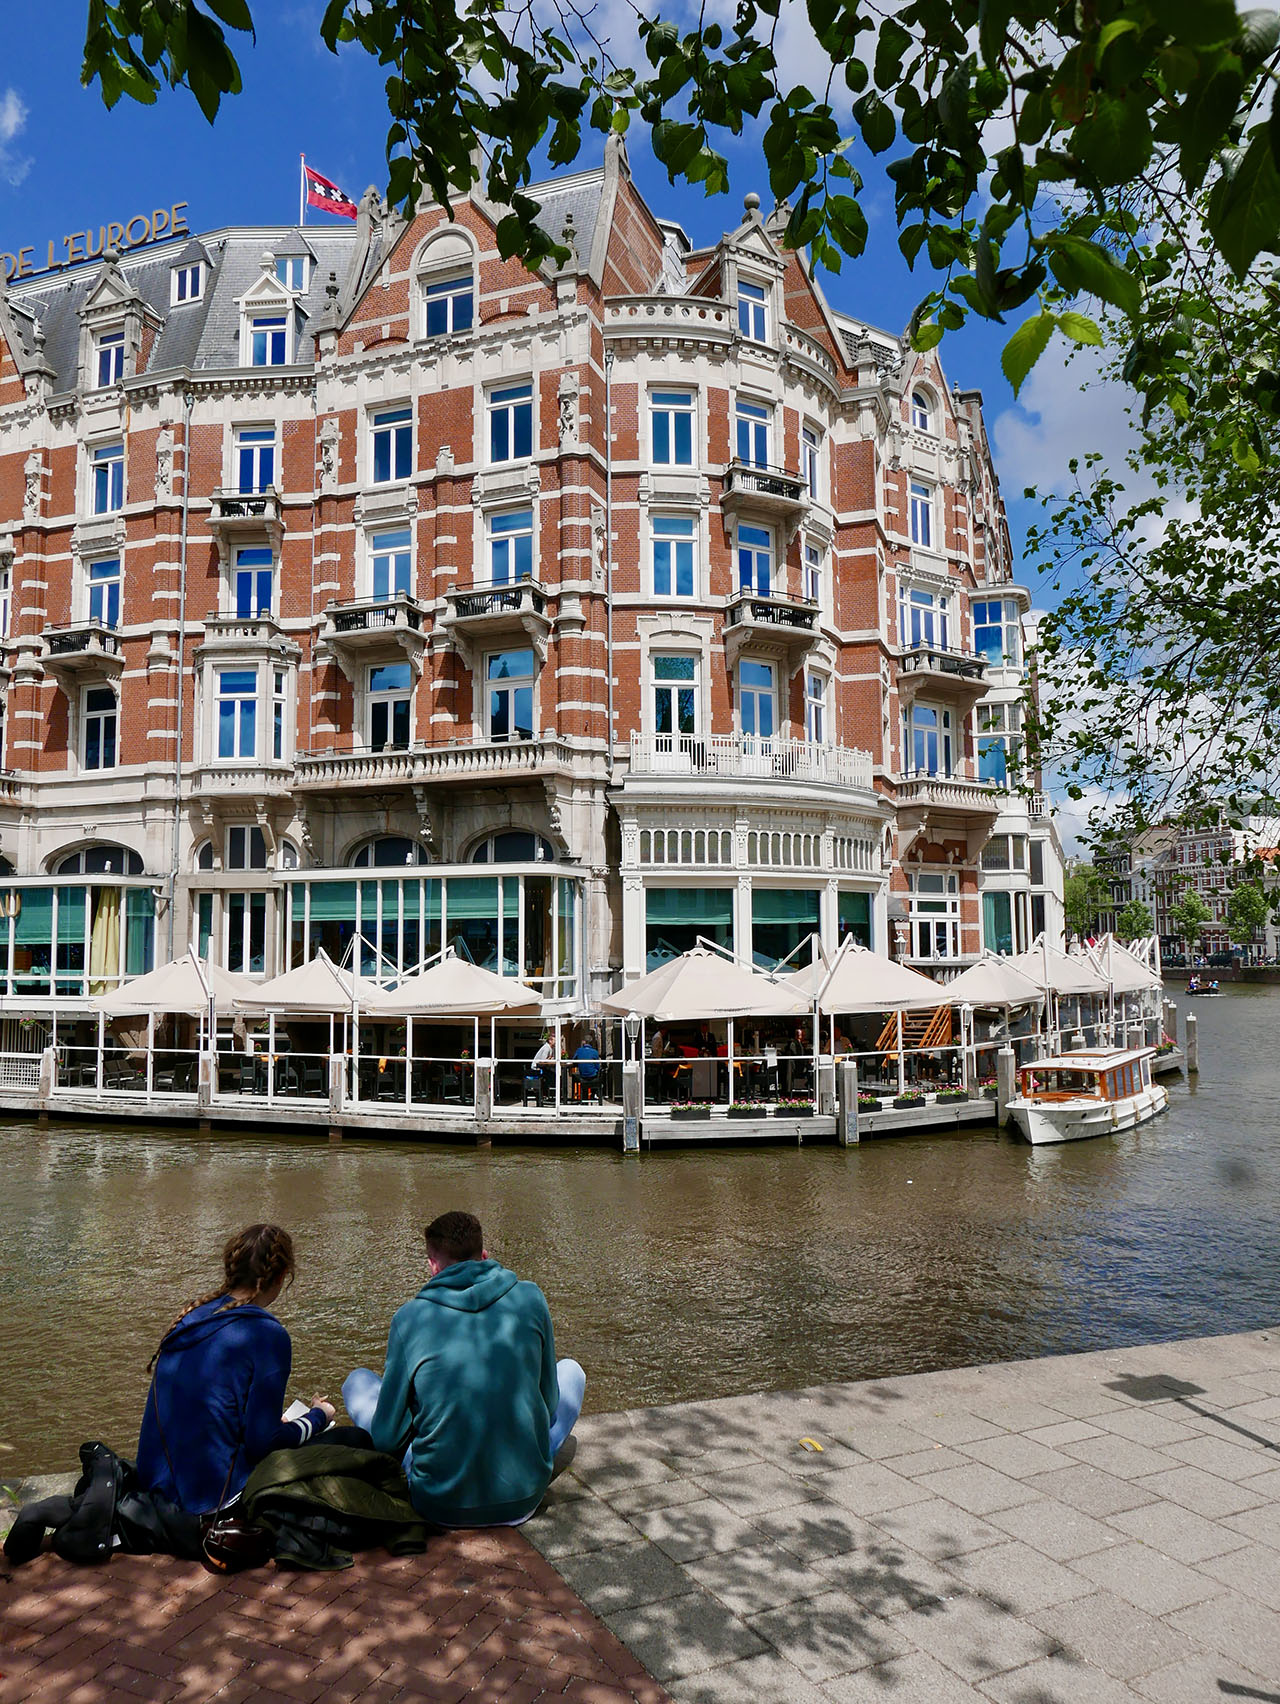 Cara Sharratt Travel - Exterior - De L'Europe in Amsterdam